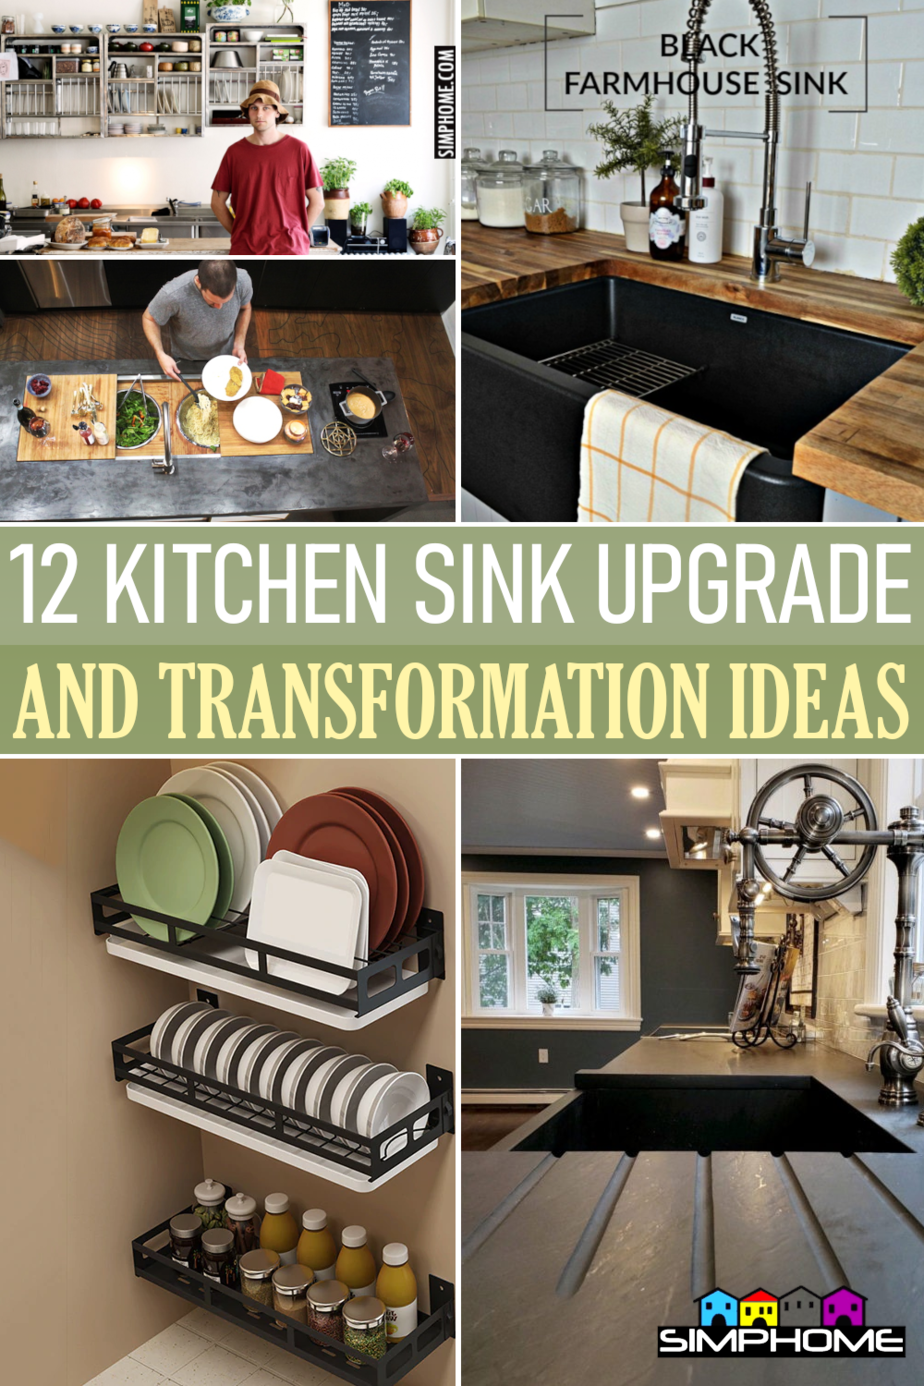 12 Kitchen Sink Transformation and Organizations via Simphome.comFeatured